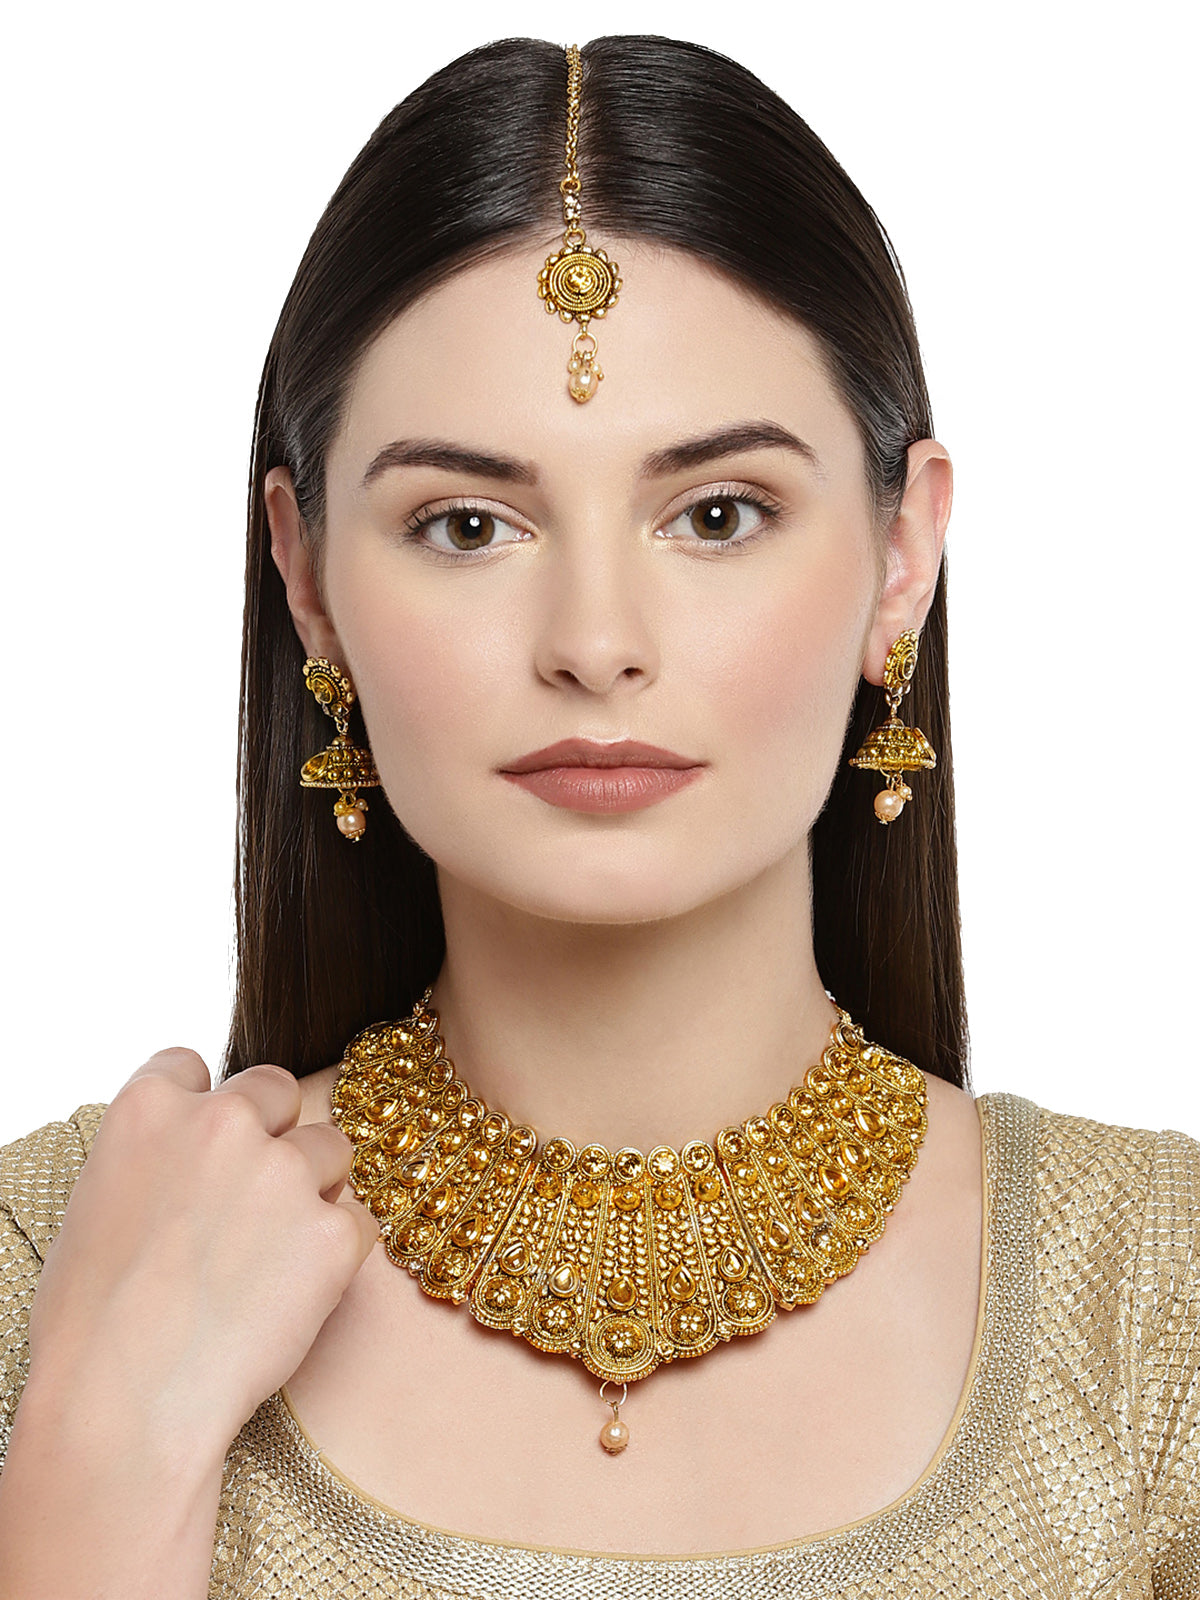 Zaveri Pearls Traditional Kundan And Pearl Bridal Necklace Set-ZAVERI PEARLS1-Jewellery Set